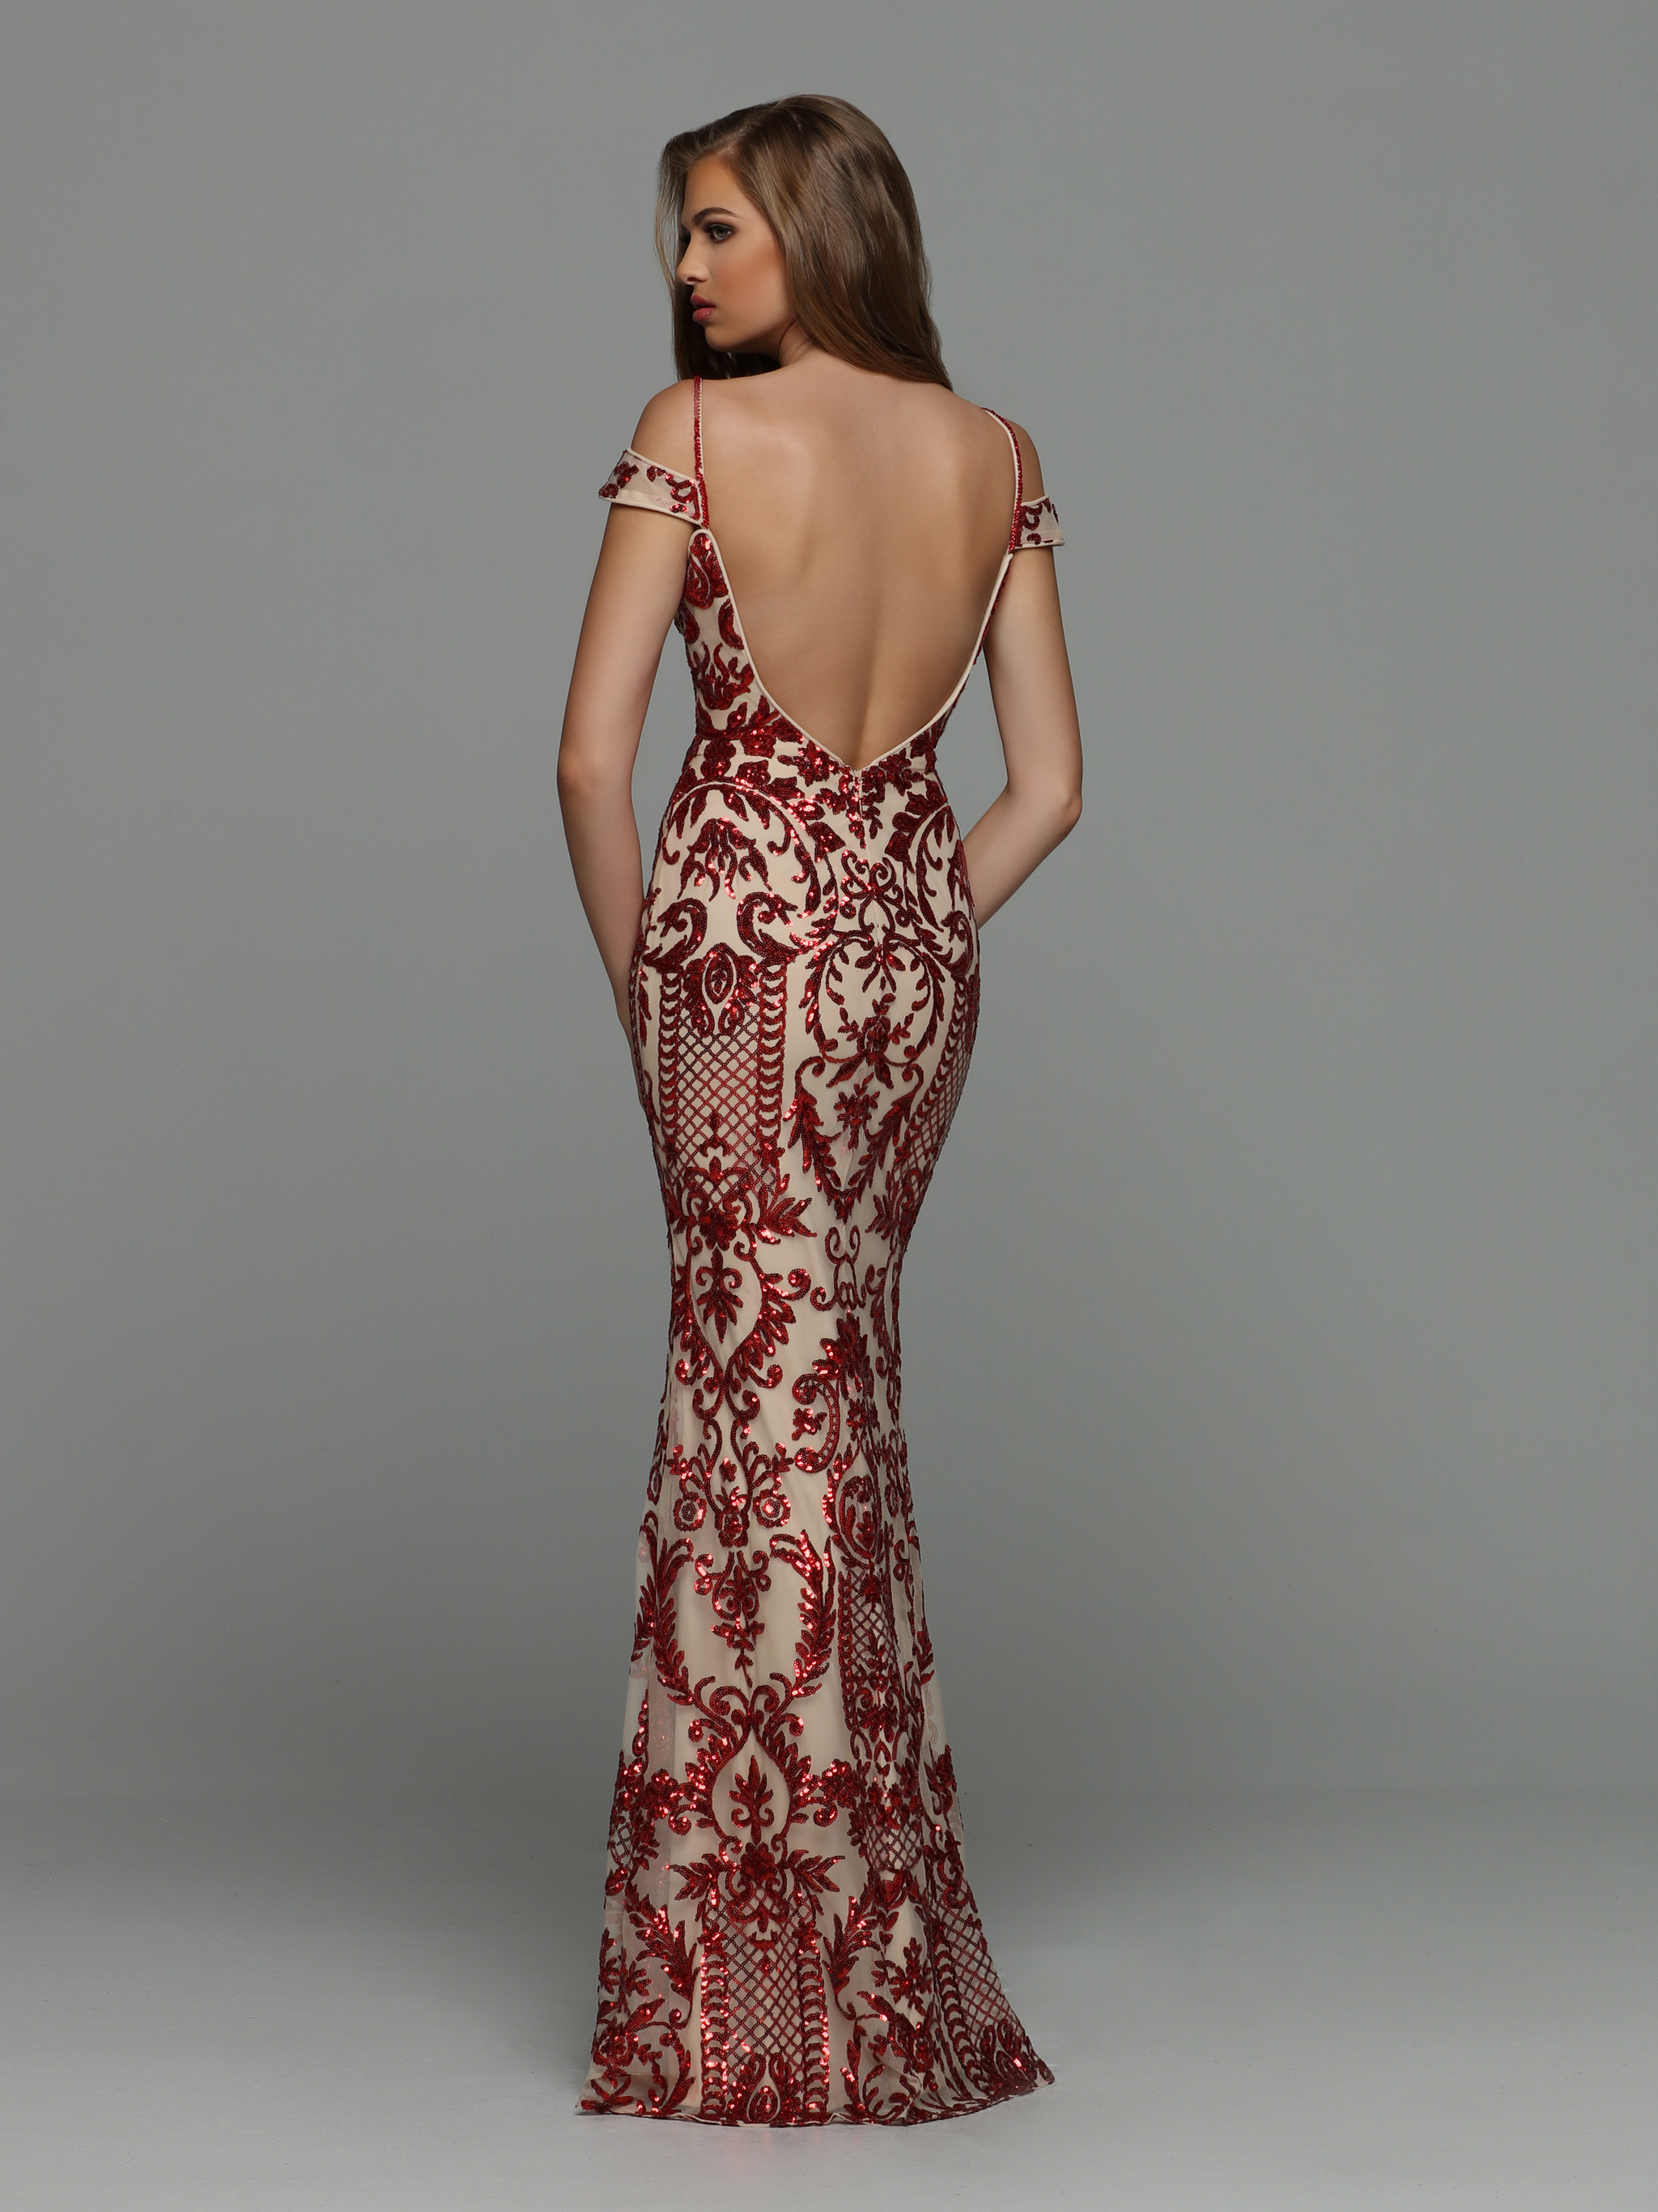 Back view of Style : 71971